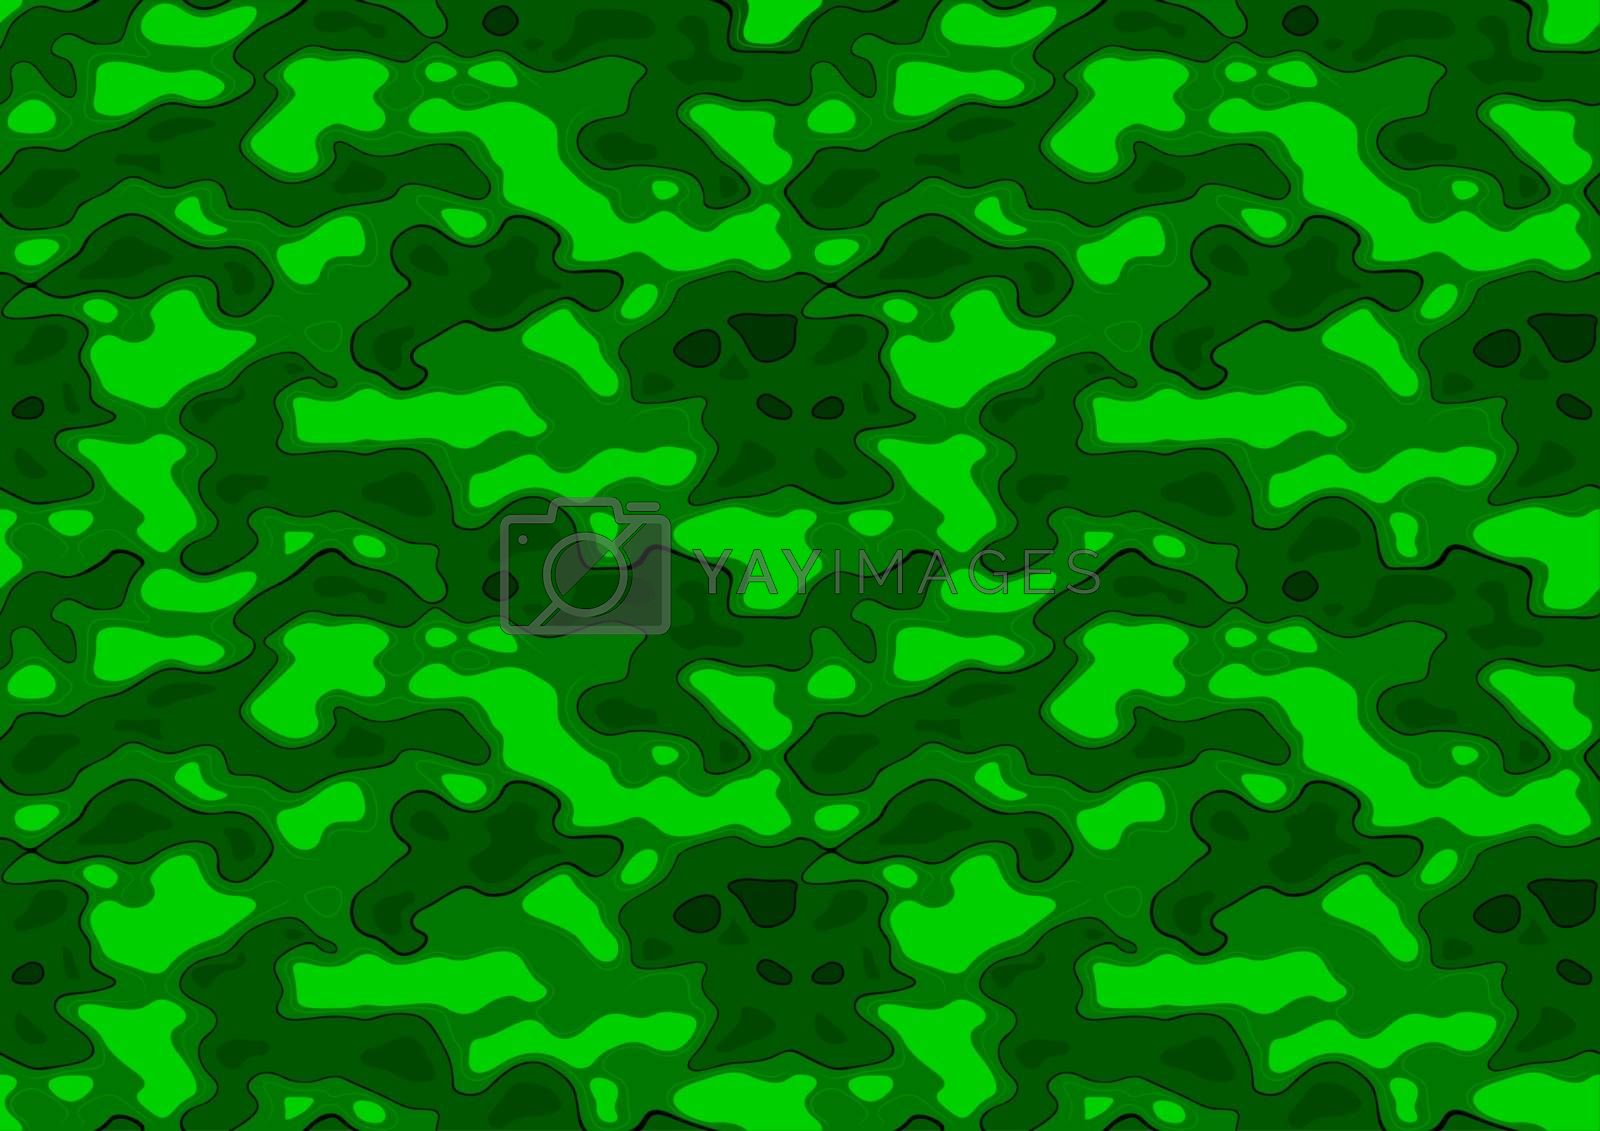 Green Repetitive Texture - Seamless Pattern Background Illustration, Vector